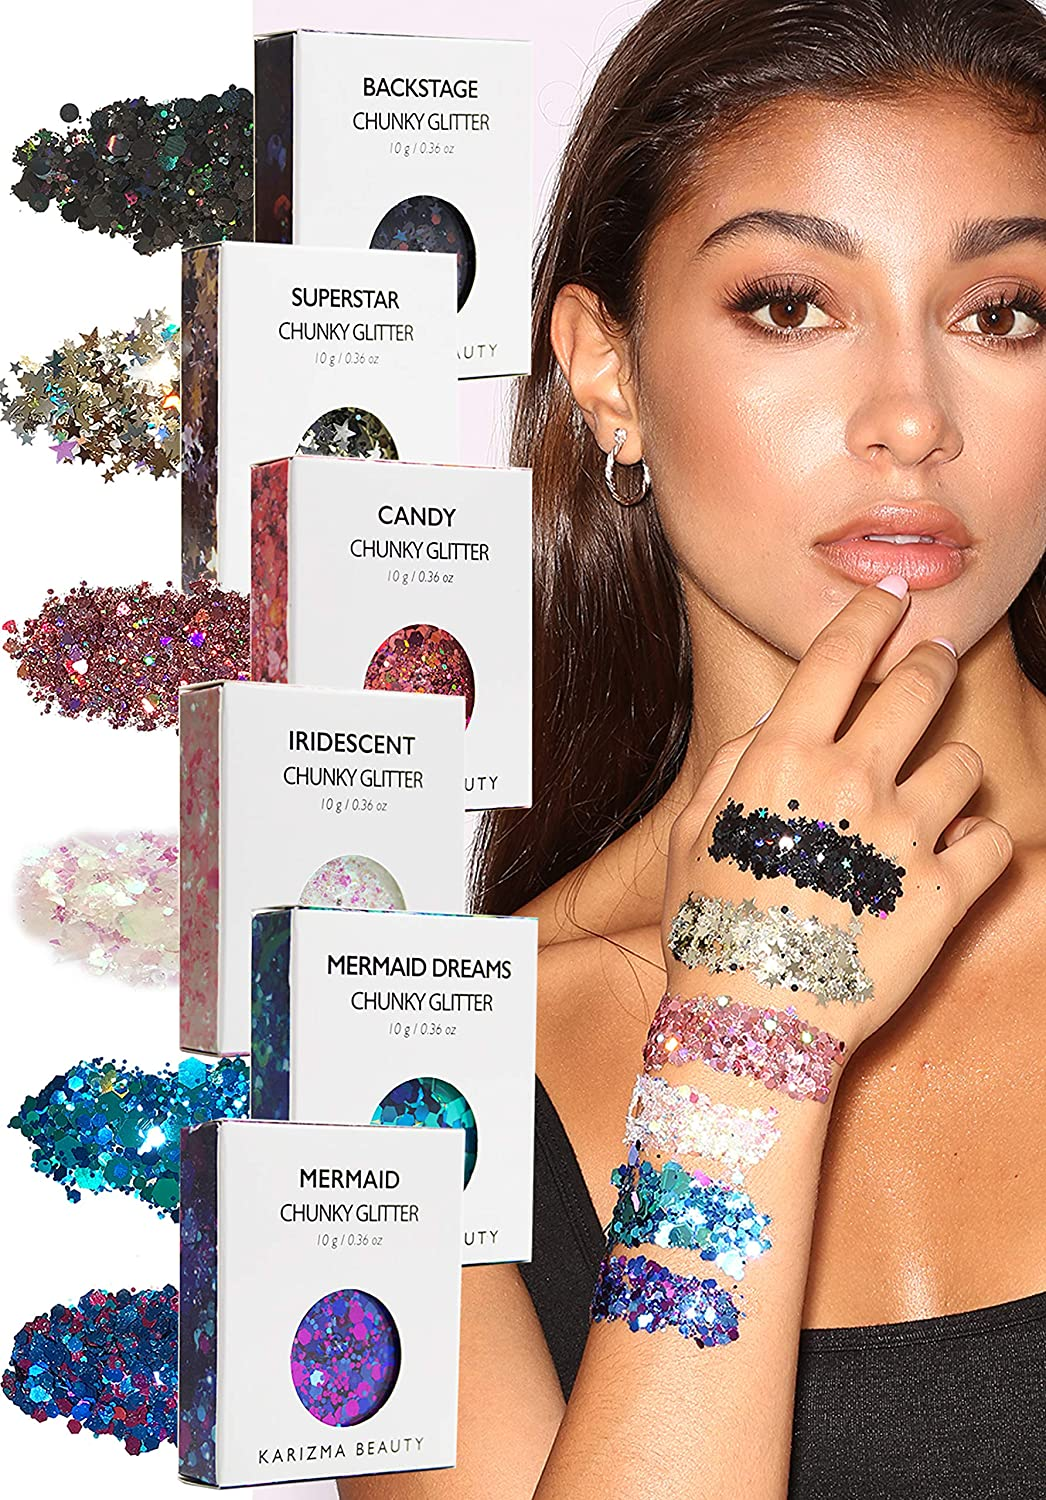 Face Glitter Pack ✮ KARIZMA Beauty ✮ 60g Festival Glitter Cosmetic Chunky Face Body Hair Nails